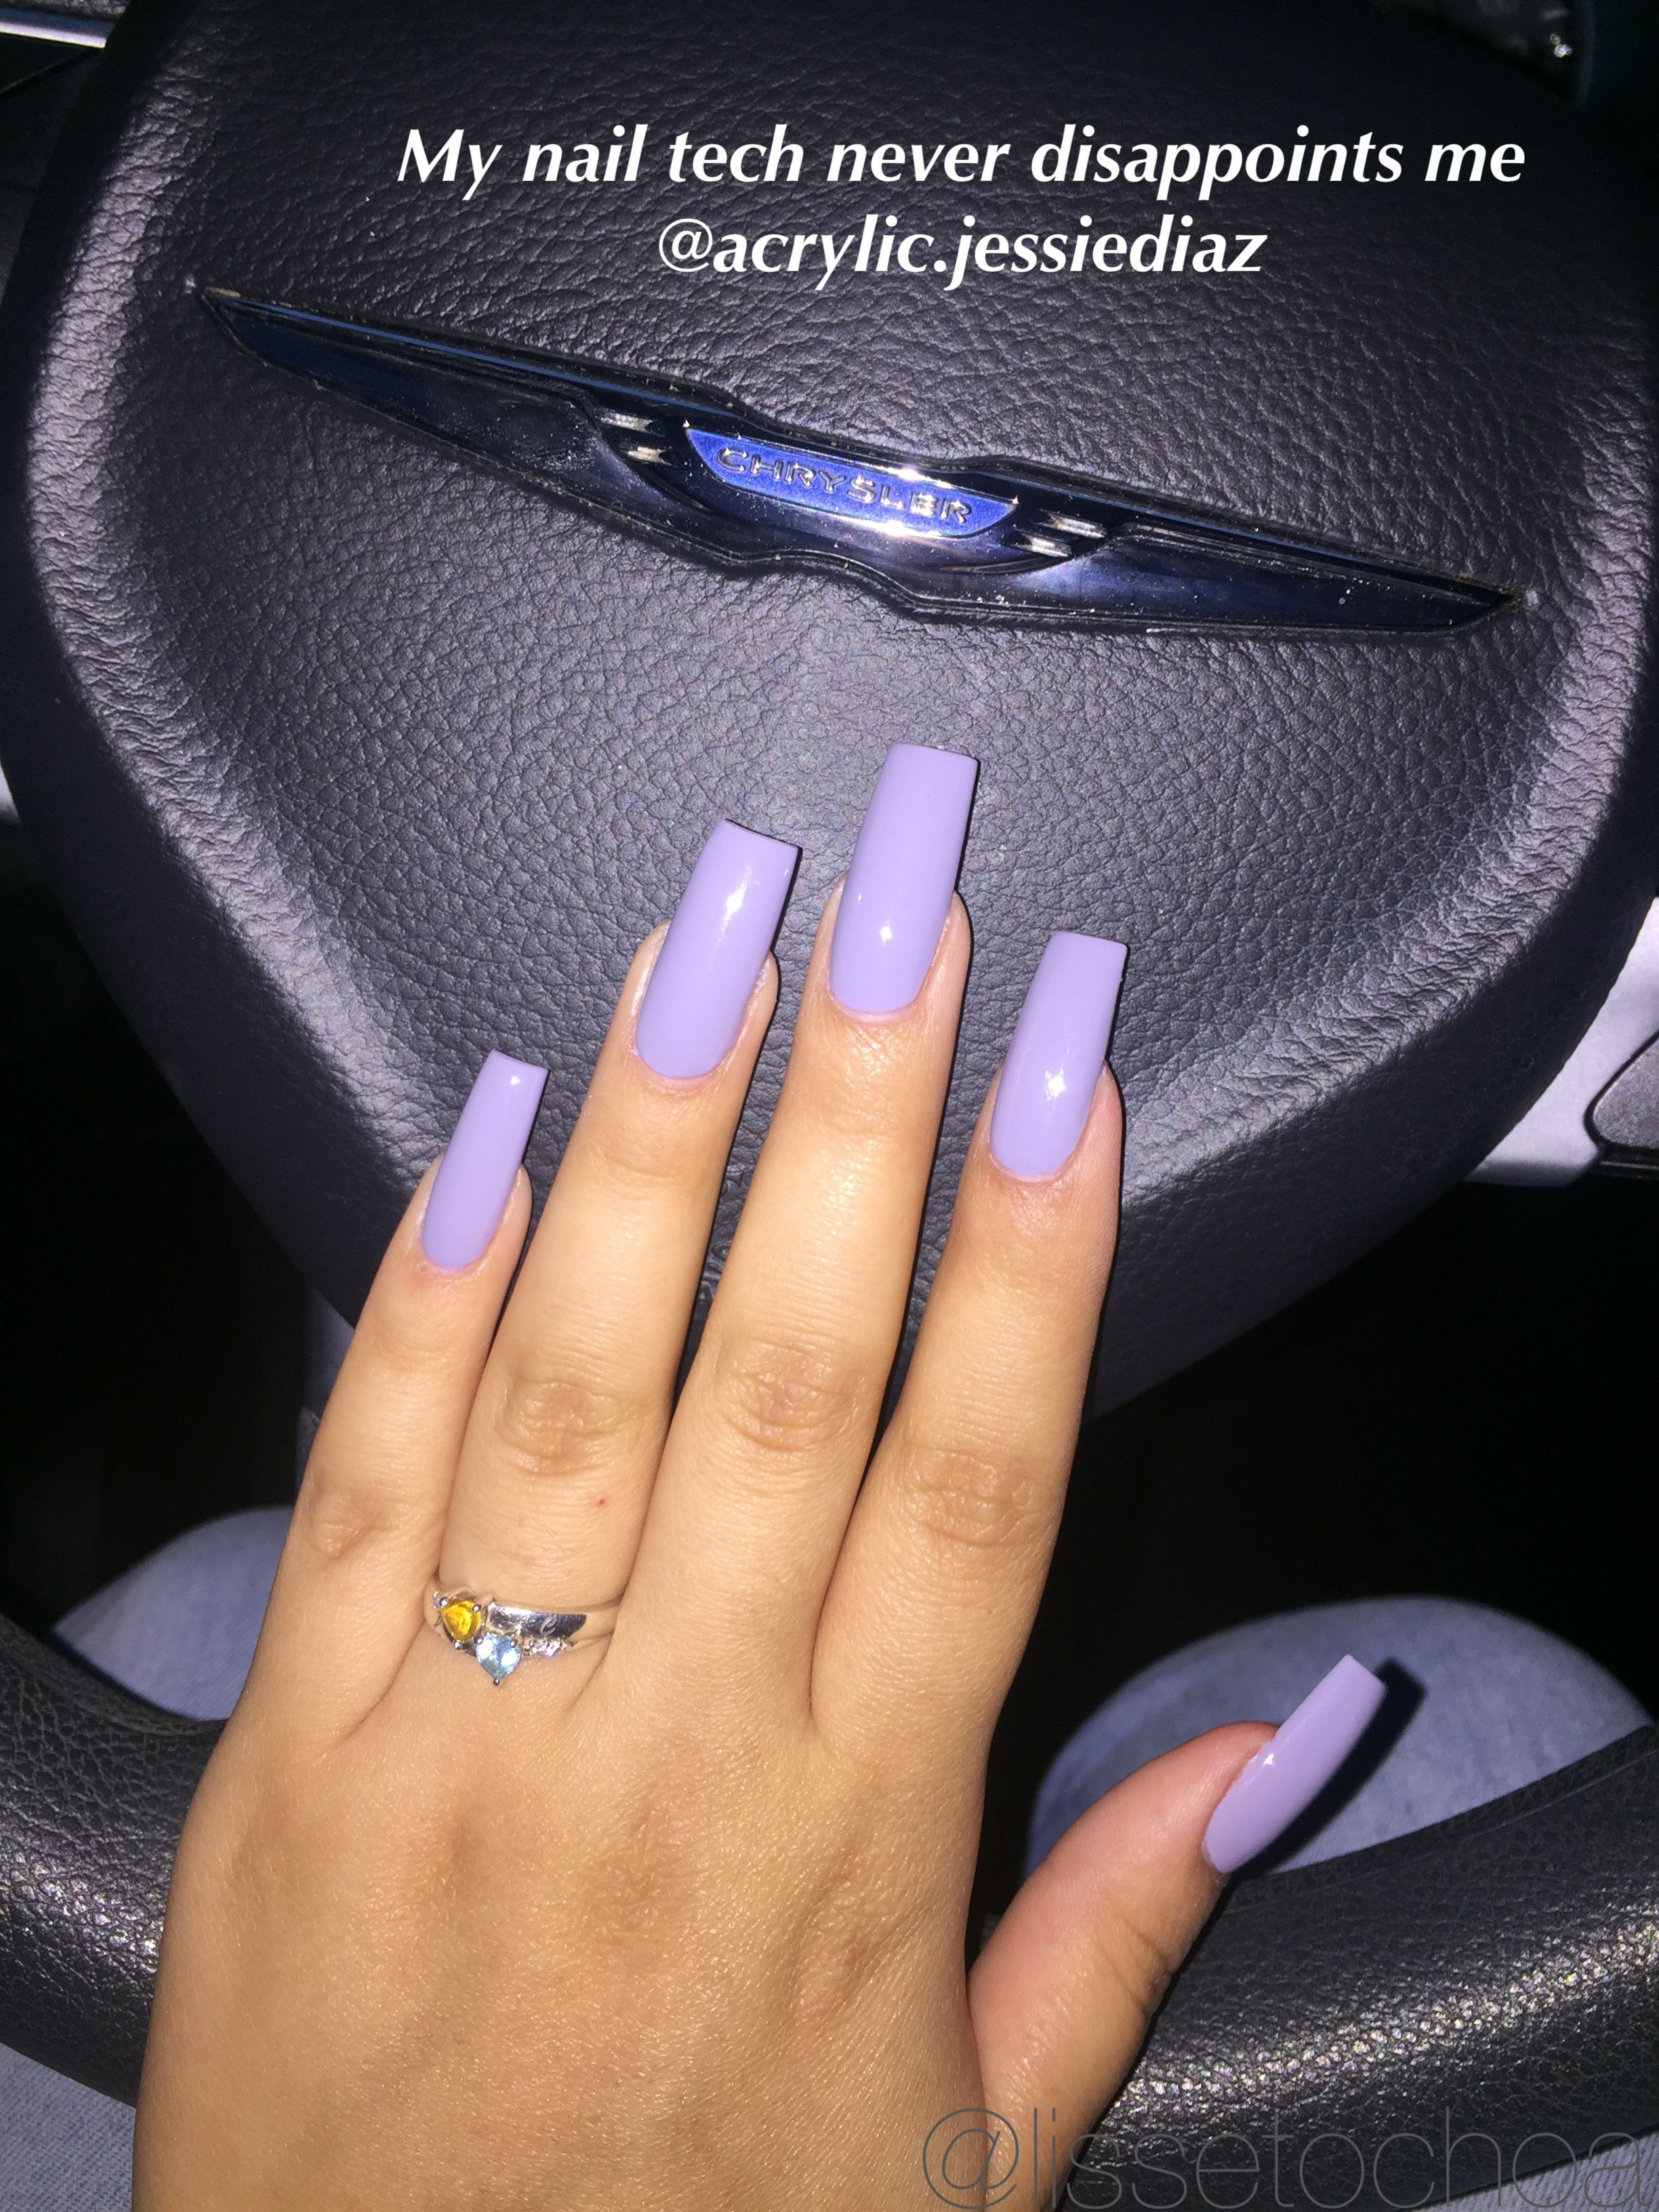 Acrylic Nails FullSet | Cut Out Heart Nails | Glow In the